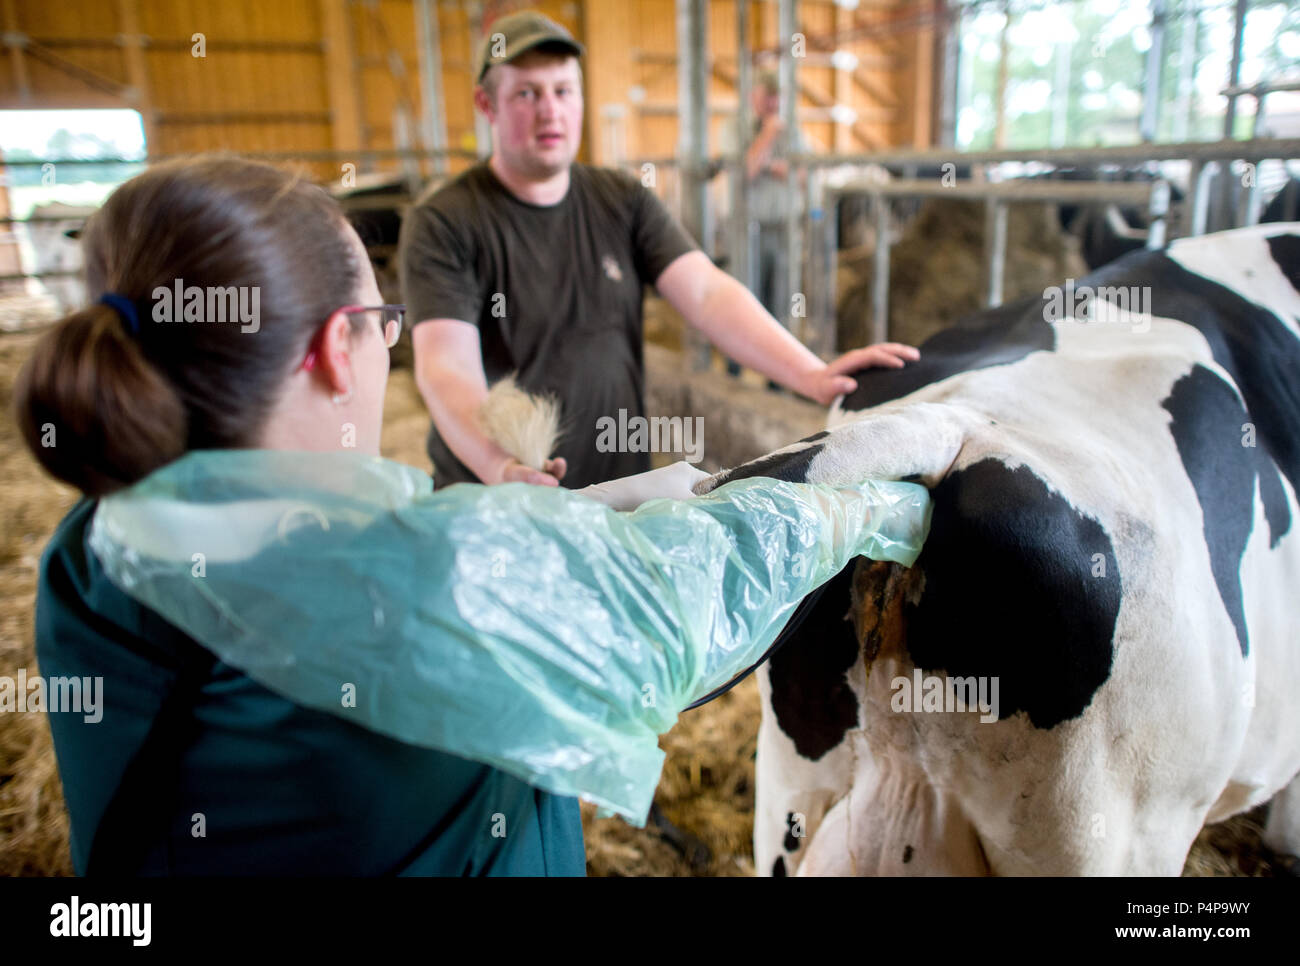 Germany, Ummern. 21st June, 2018. Susanne Lier, veterinarian of the veterinary practice 'Hohne' performs ultrasound on the cow 'Perle' via rectal intrusion. The number of farm veterinarians in Germany is dropping - many of them decide to specialize on pet animals. This trend is worrying for farmers and agriculturalists. Credit: Hauke-Christian Dittrich/dpa/Alamy Live News - Stock Image